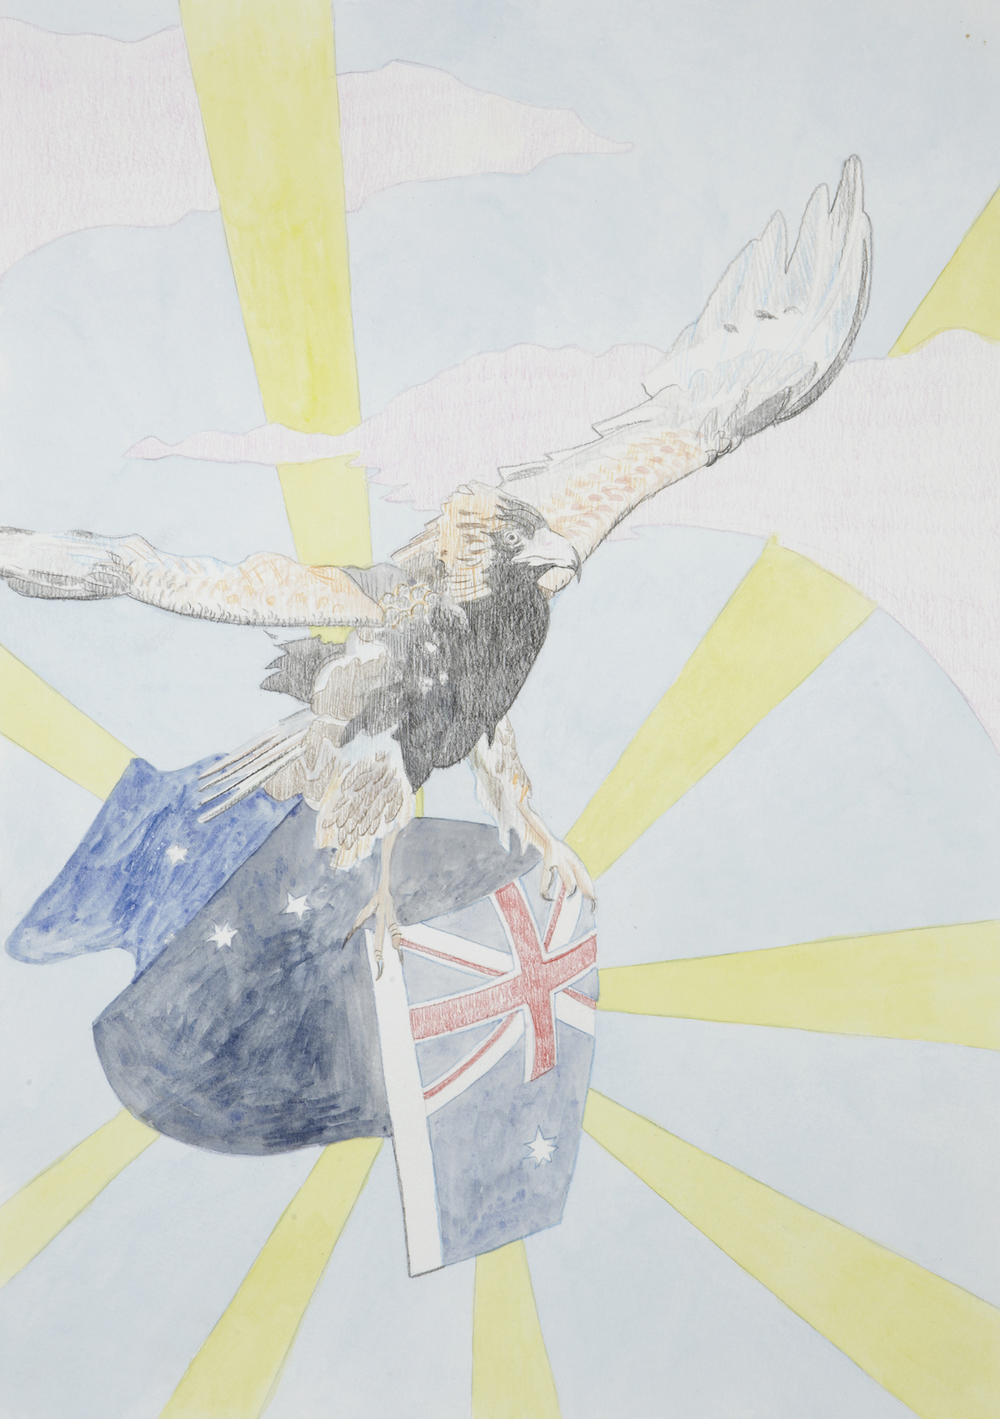 Australian Eagle #3, 2012, Watercolour and pencil on paper, 29.7 x 42.0 cm, Photo: Sam Scoufos